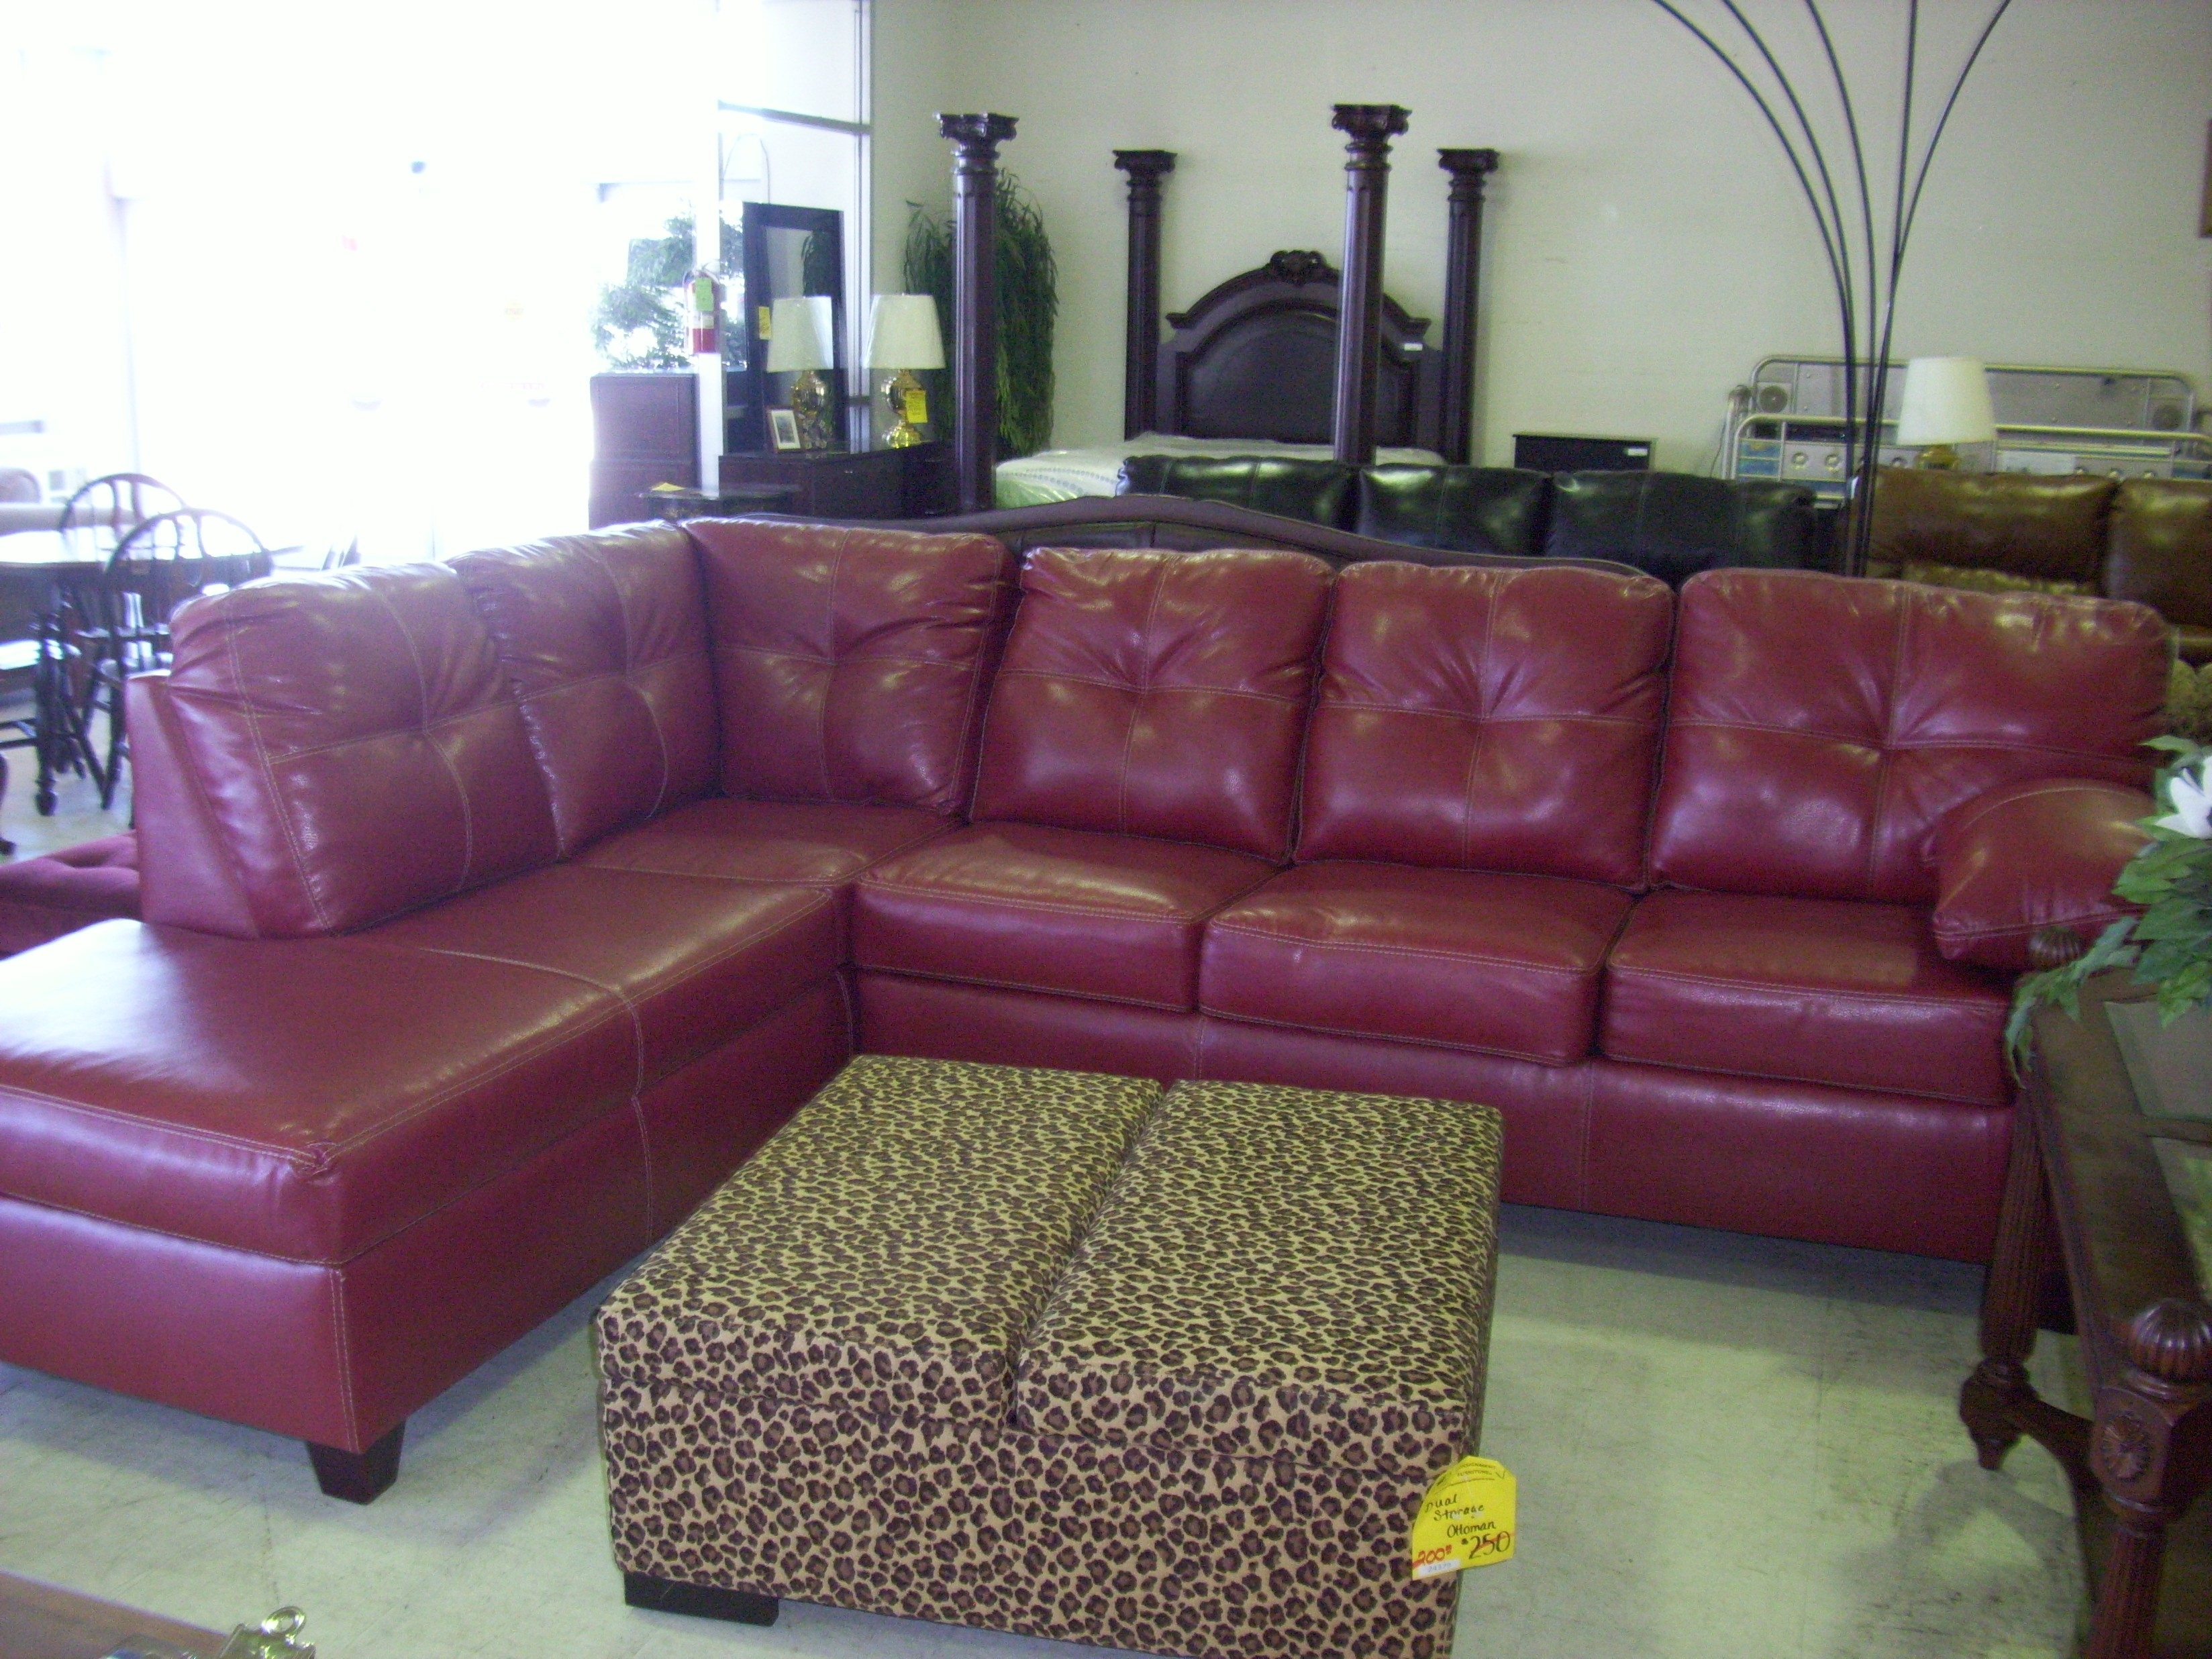 Sofa Red Leather Sectional Sofas Modern With Black Recliners Couches pertaining to Red Leather Sectionals With Ottoman (Image 15 of 15)